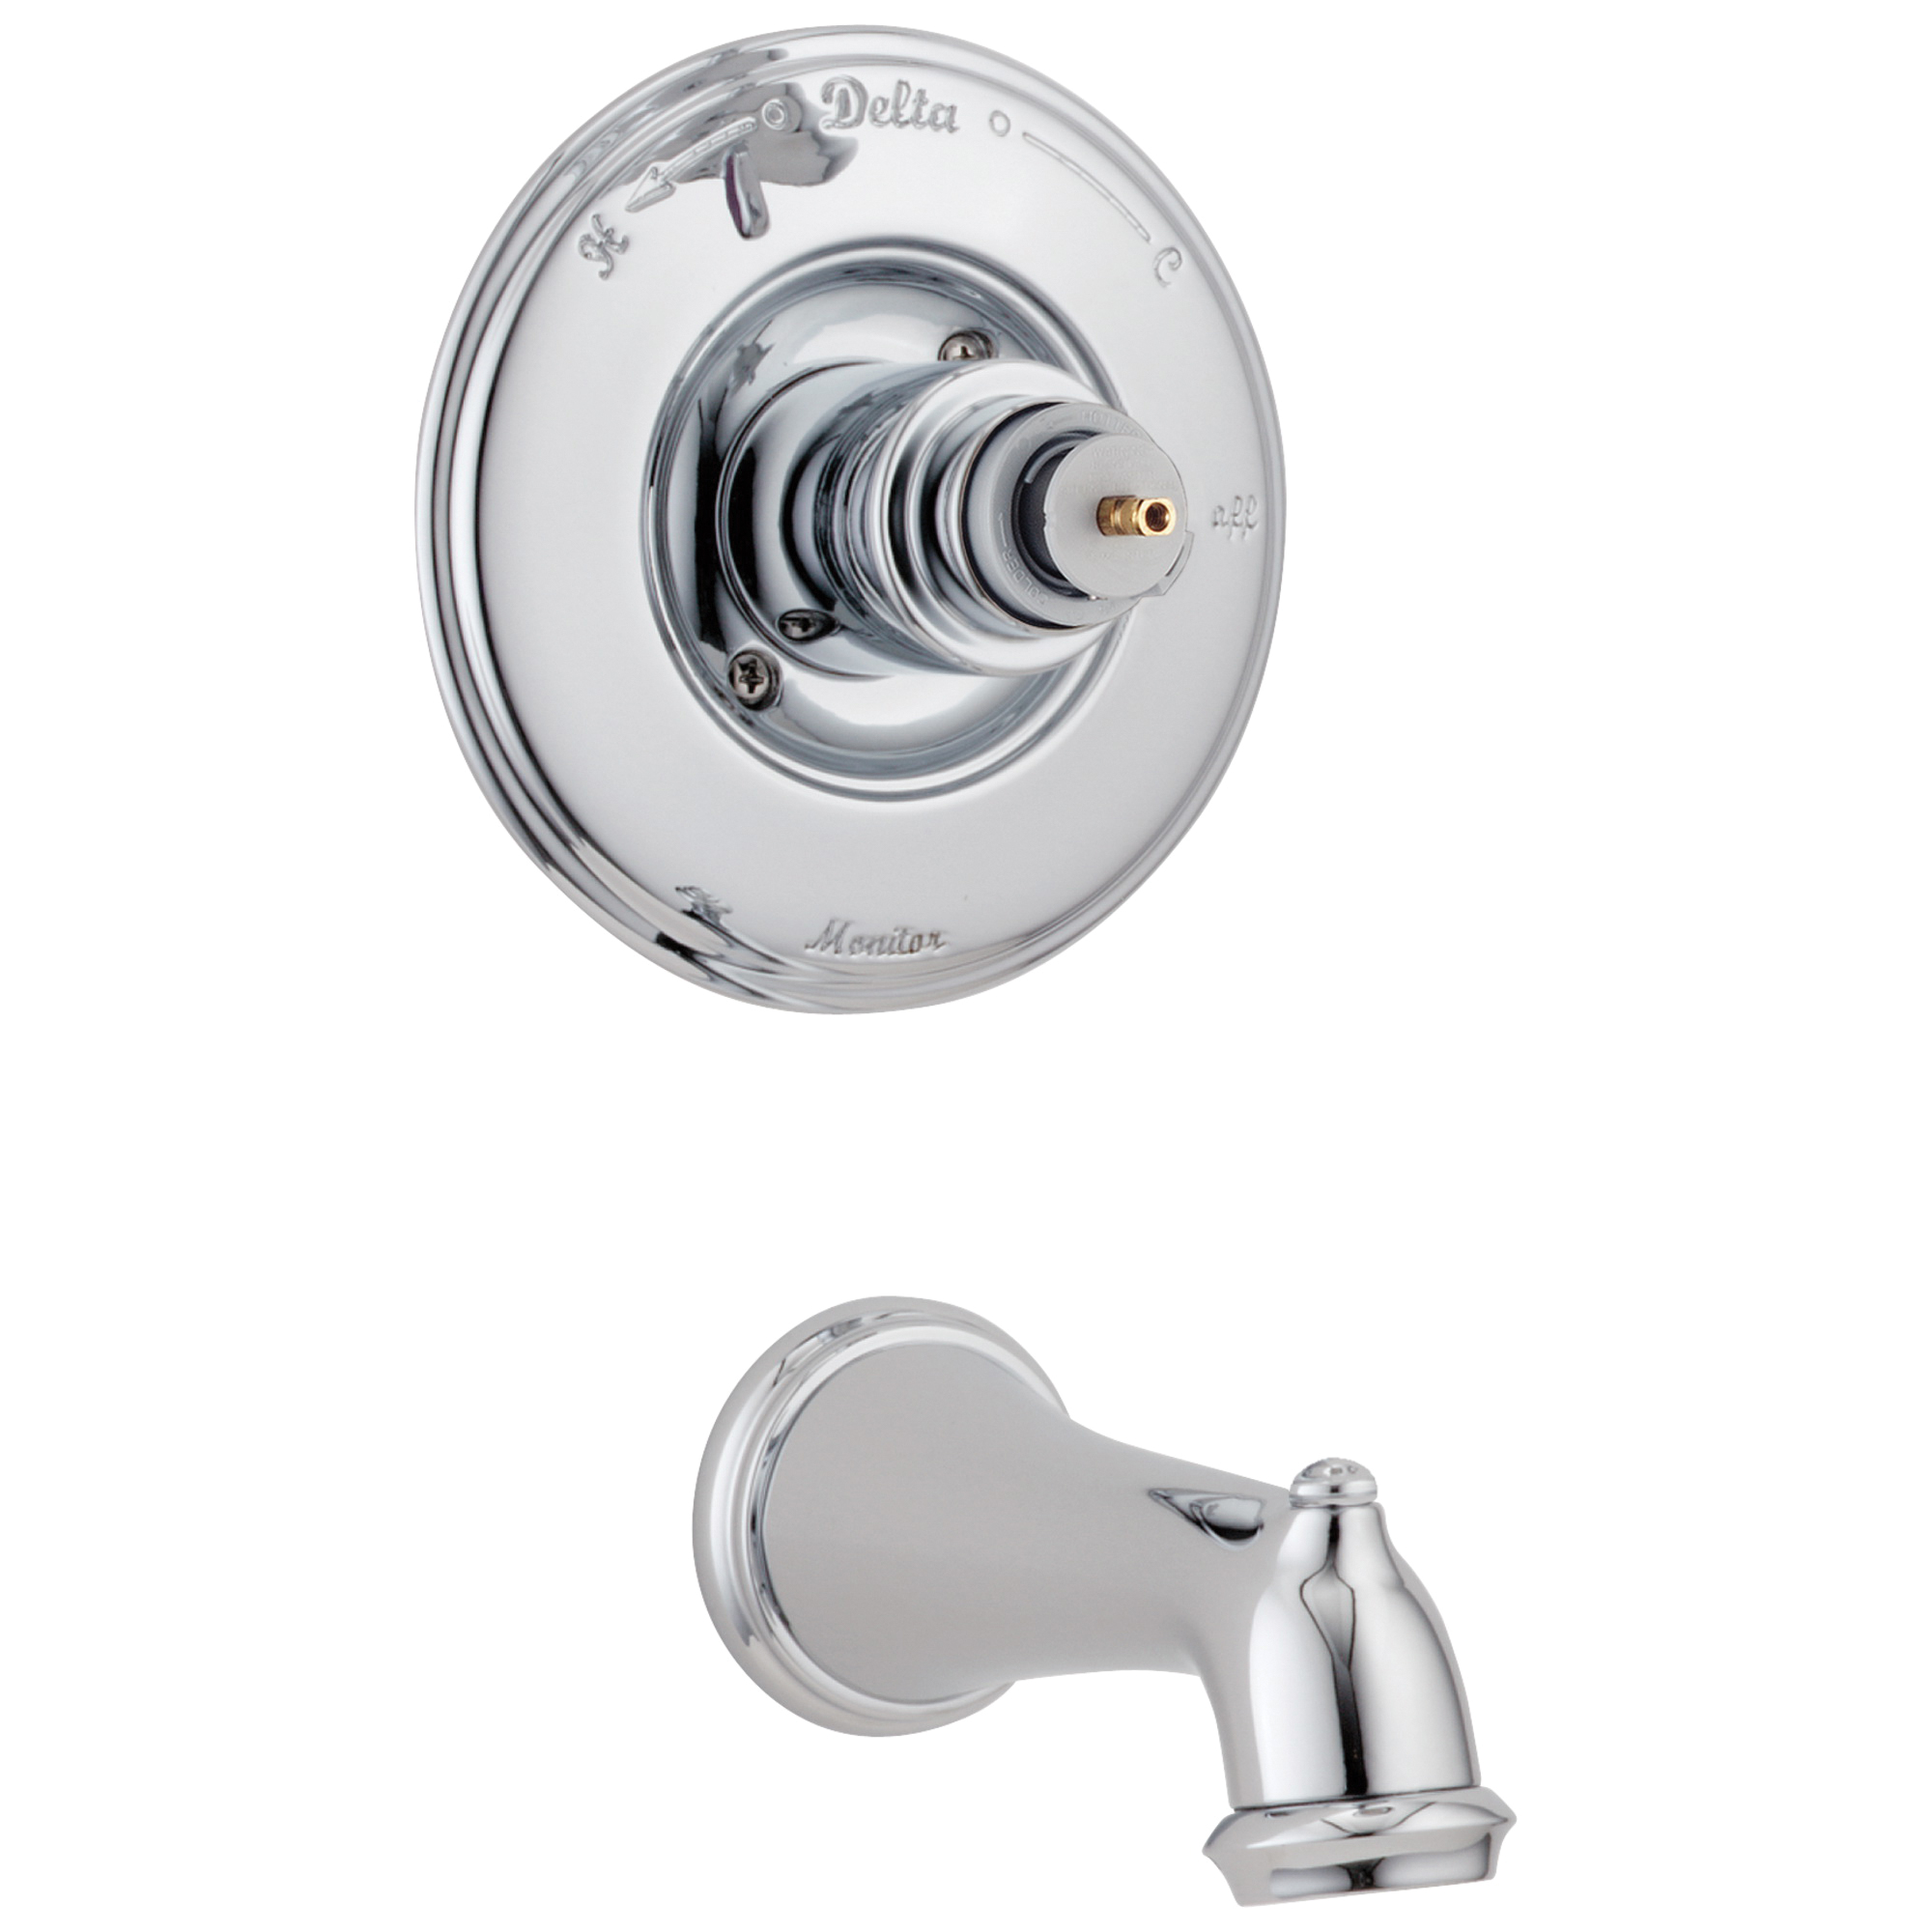 DELTA® T14155-LHP Monitor® 14 Victorian® Wall Mount Tub Trim, 7 gpm, Chrome Plated, Hand Shower Yes/No: No, Domestic, Commercial